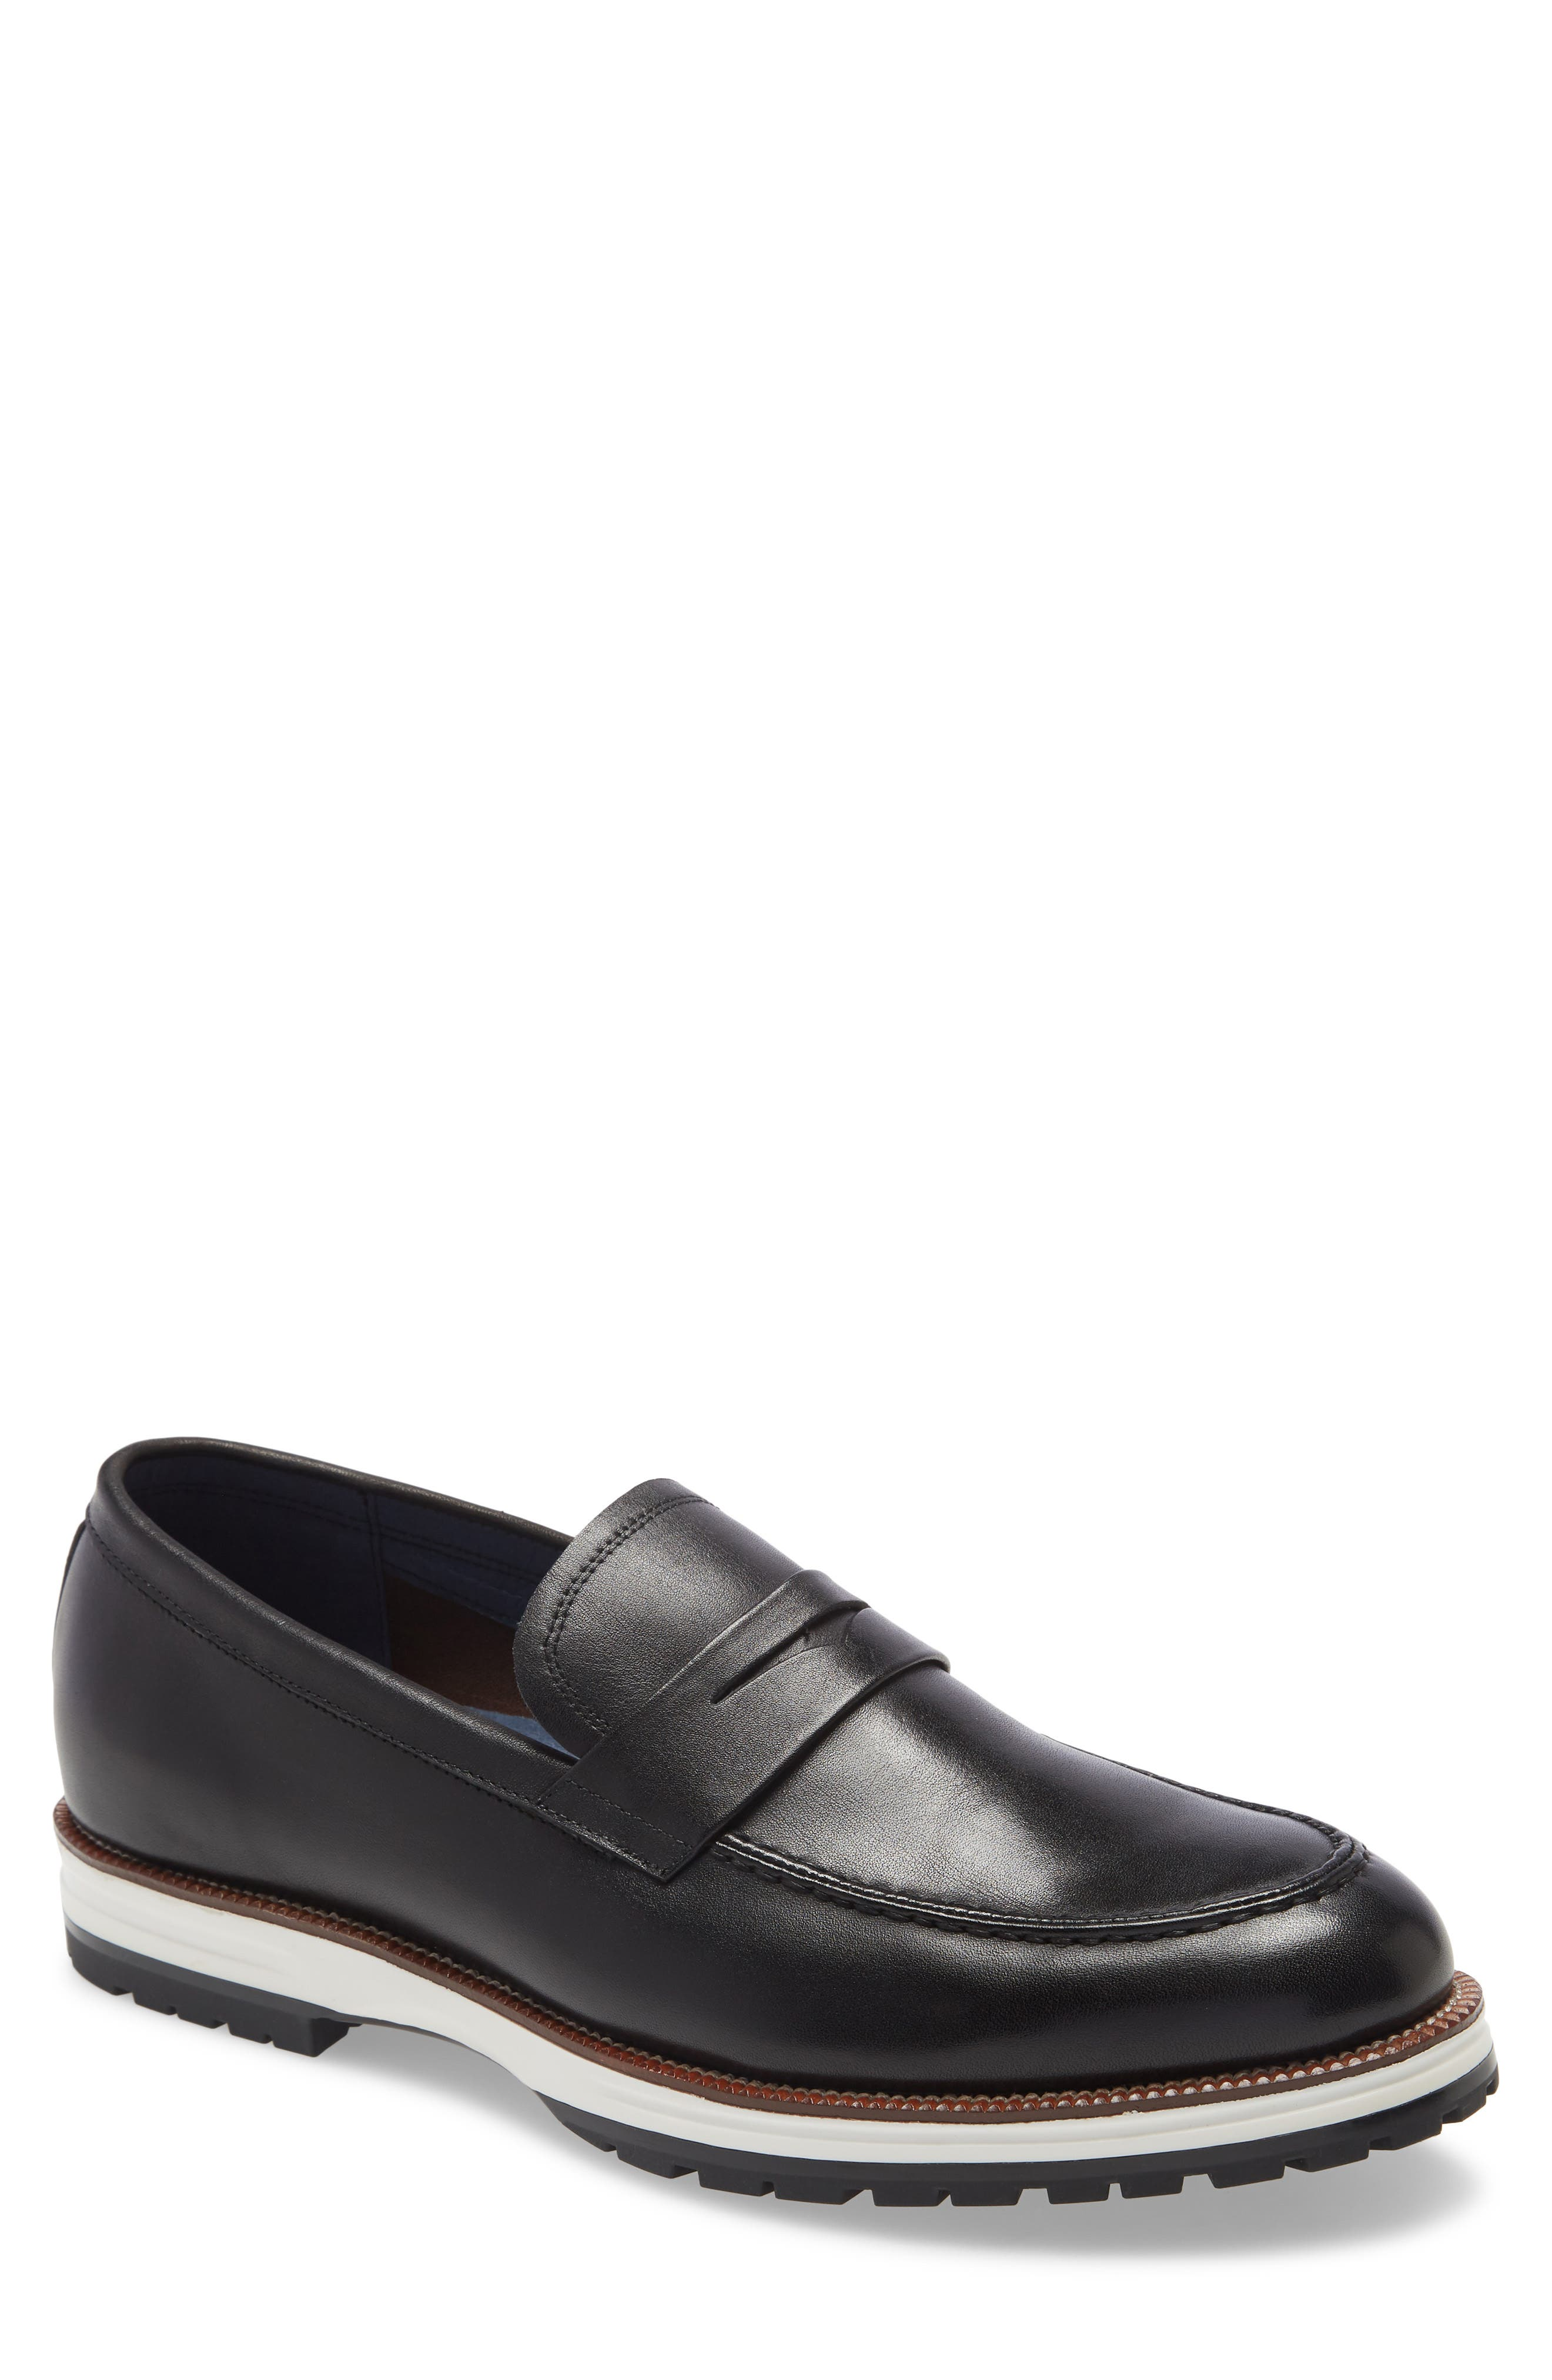 Represent Penny Loafer